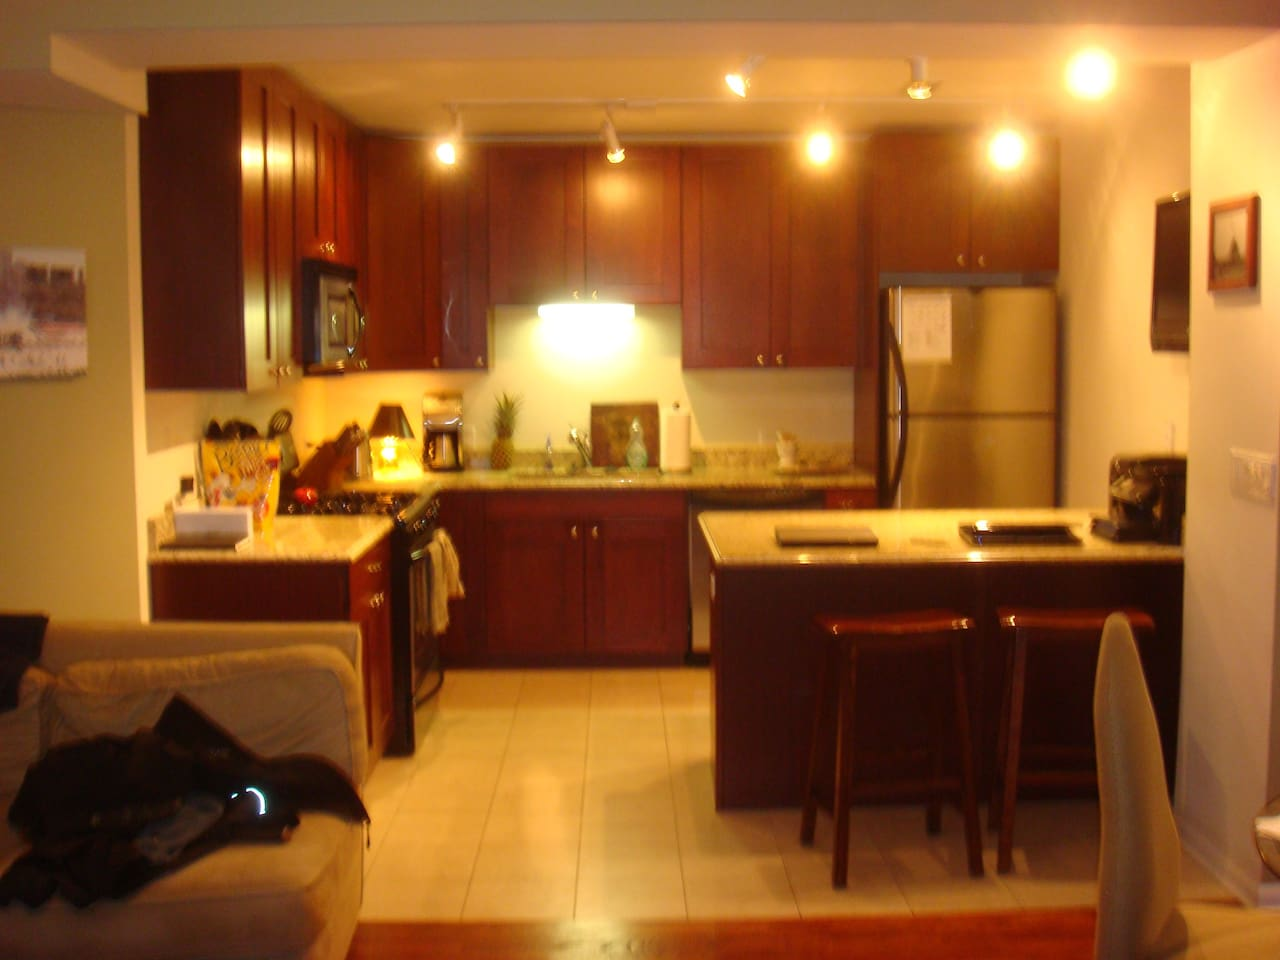 Premium furnishings throughout including granite counter tops, stainless steel appliances, cherry cabinets.  The kitchen is open to the living room, a great spot for entertaining.